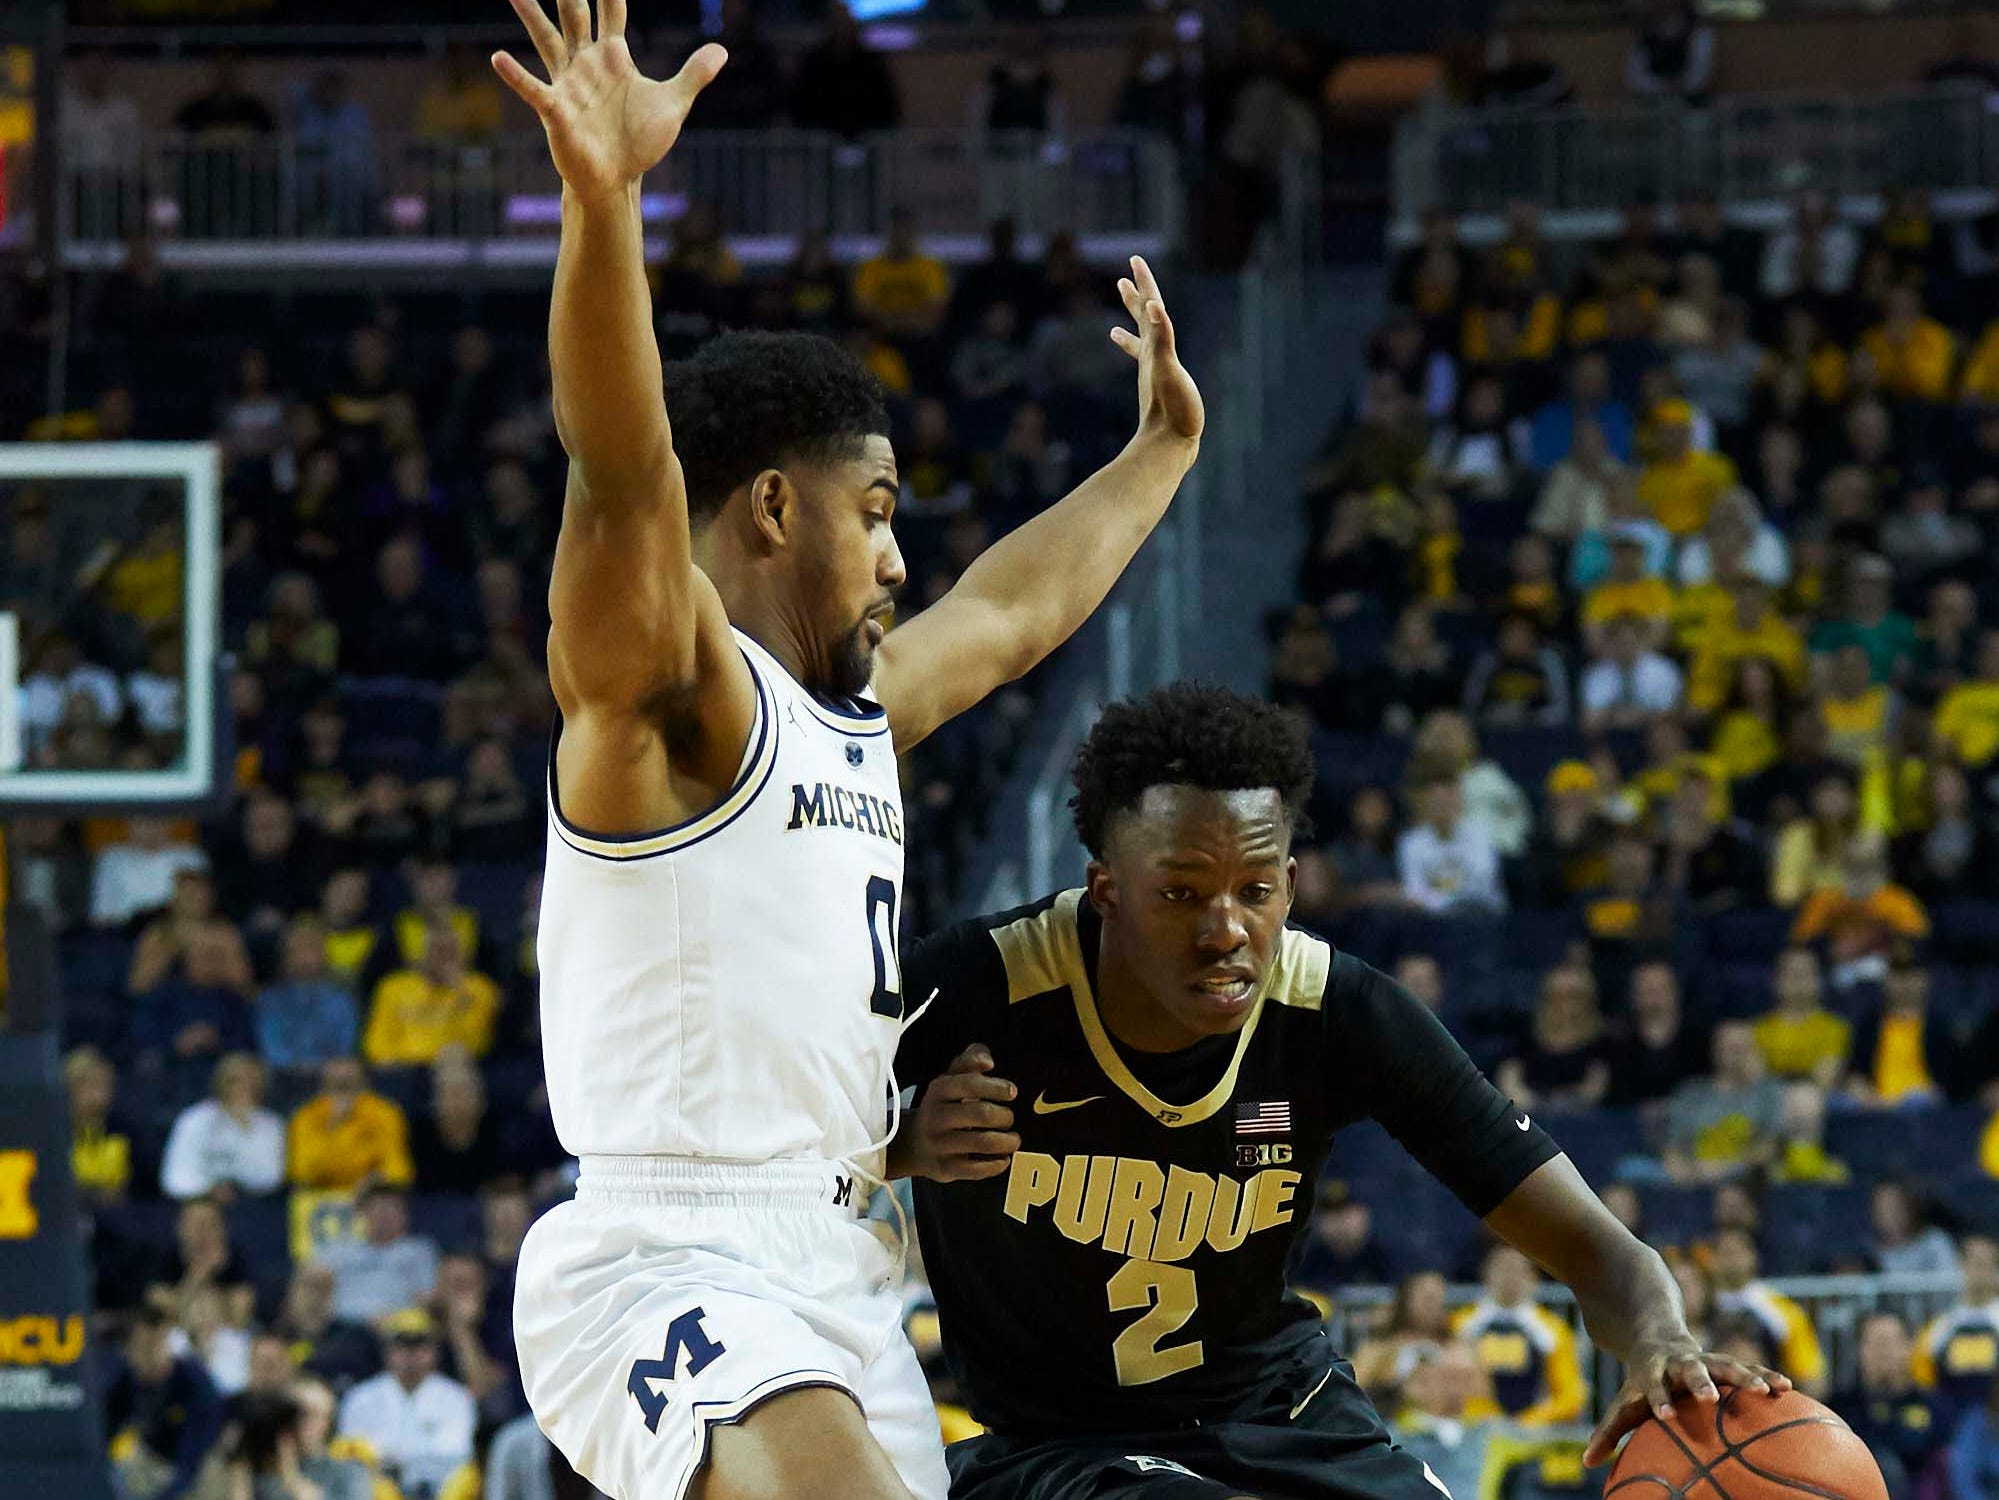 Dec 1, 2018; Ann Arbor, MI, USA; Purdue Boilermakers guard Eric Hunter Jr. (2) dribbles defended by Michigan Wolverines guard David DeJulius (0) in the second half at Crisler Center. Mandatory Credit: Rick Osentoski-USA TODAY Sports